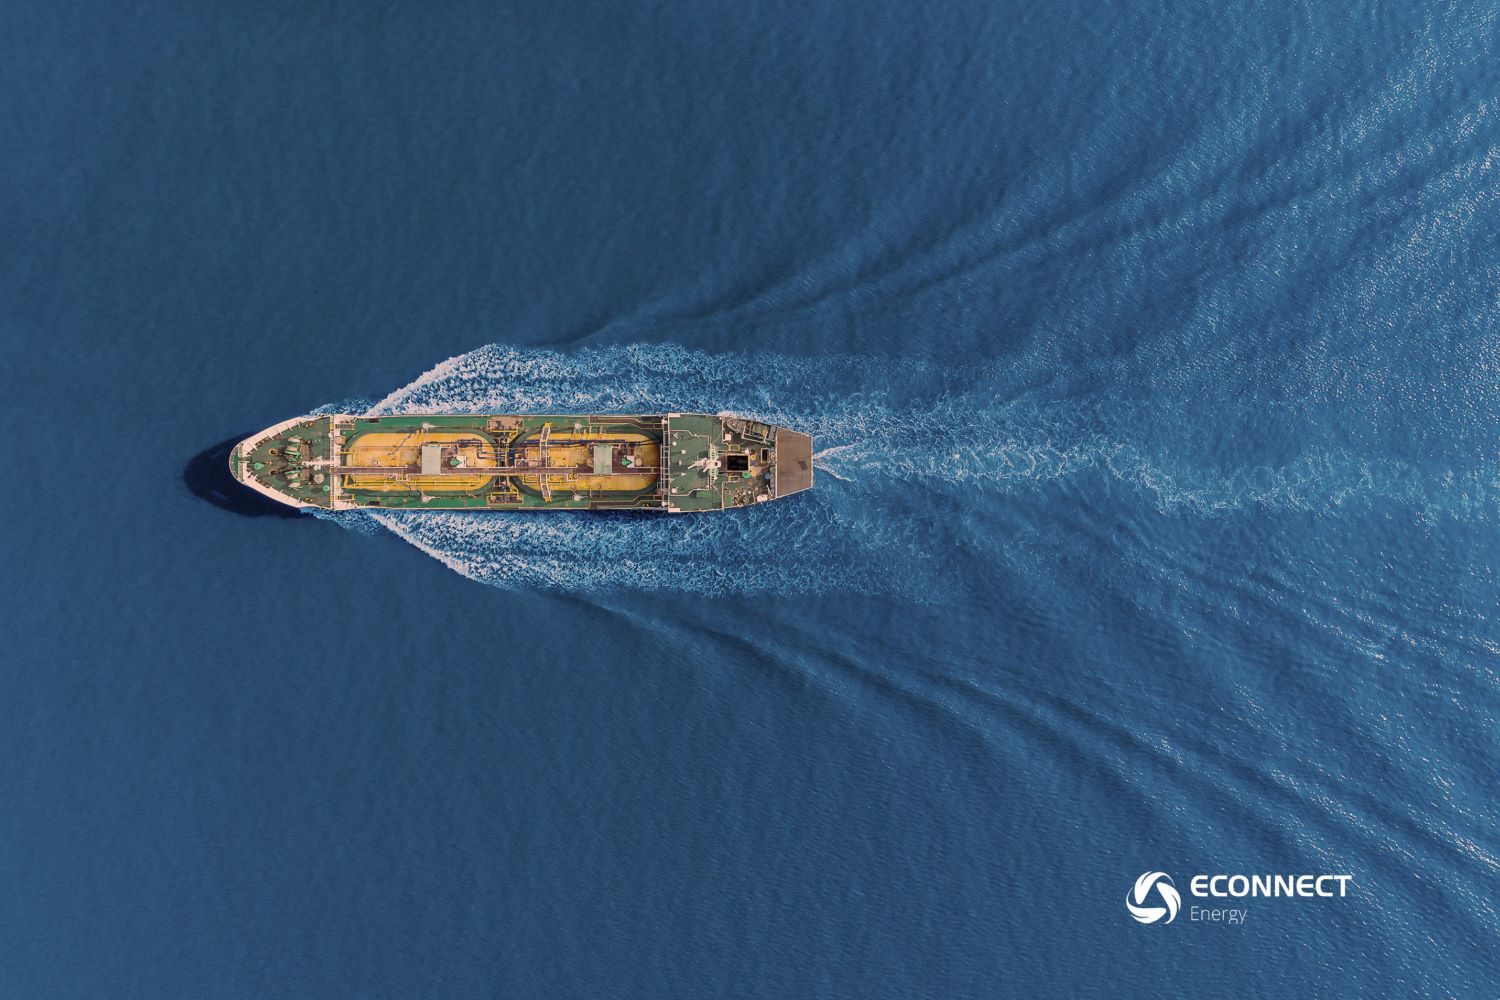 Ammonia – what is it, and how can it be applied to the energy and shipping sectors?